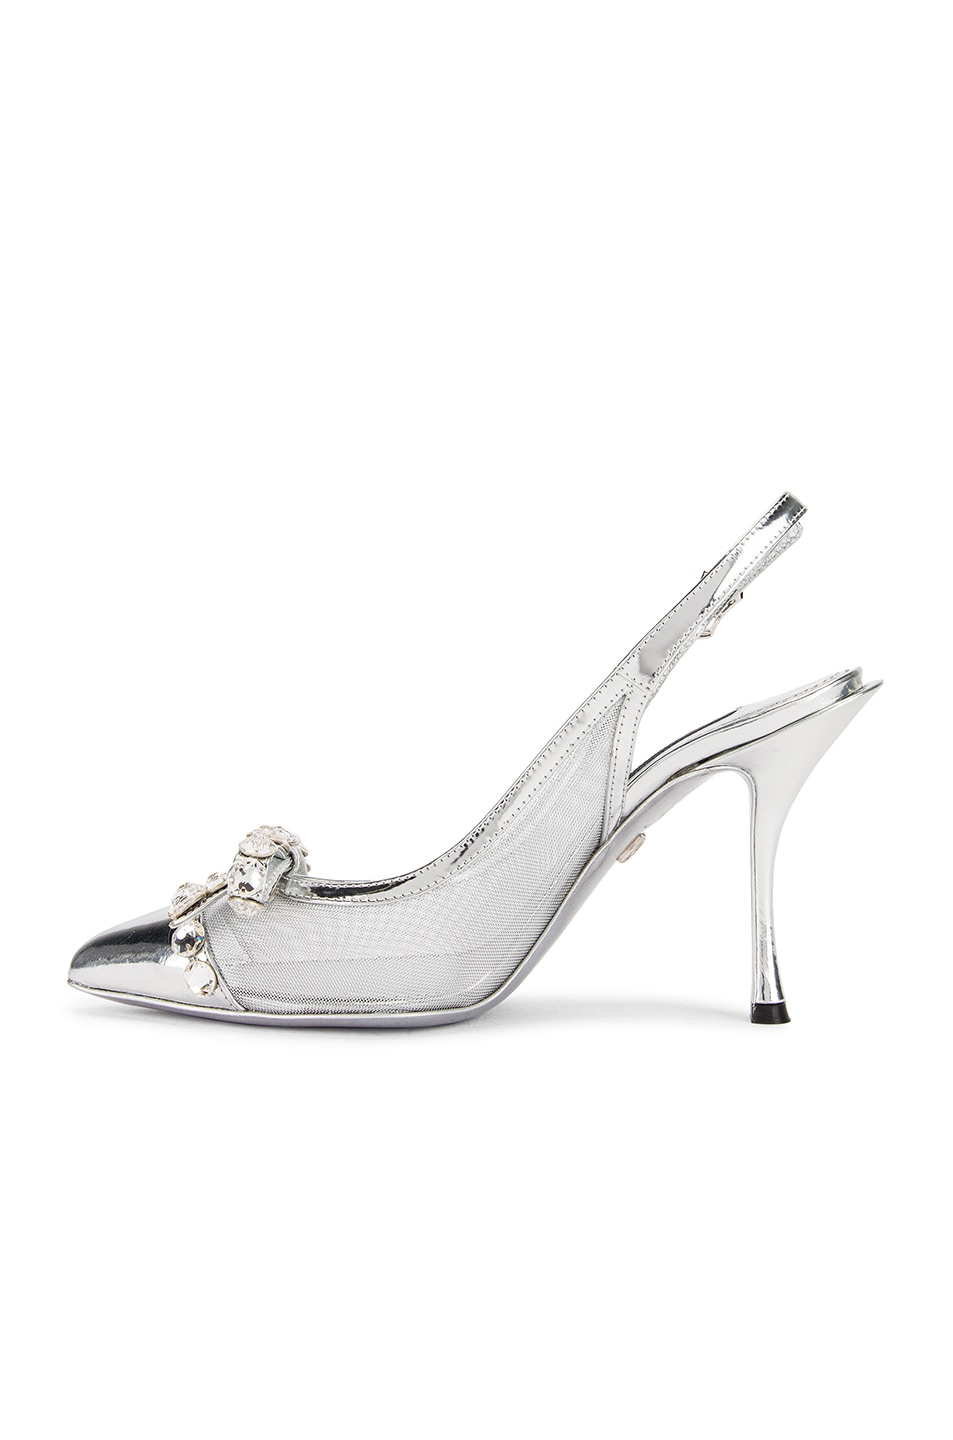 Image 5 of Dolce & Gabbana Bow Slingback Heels in Silver